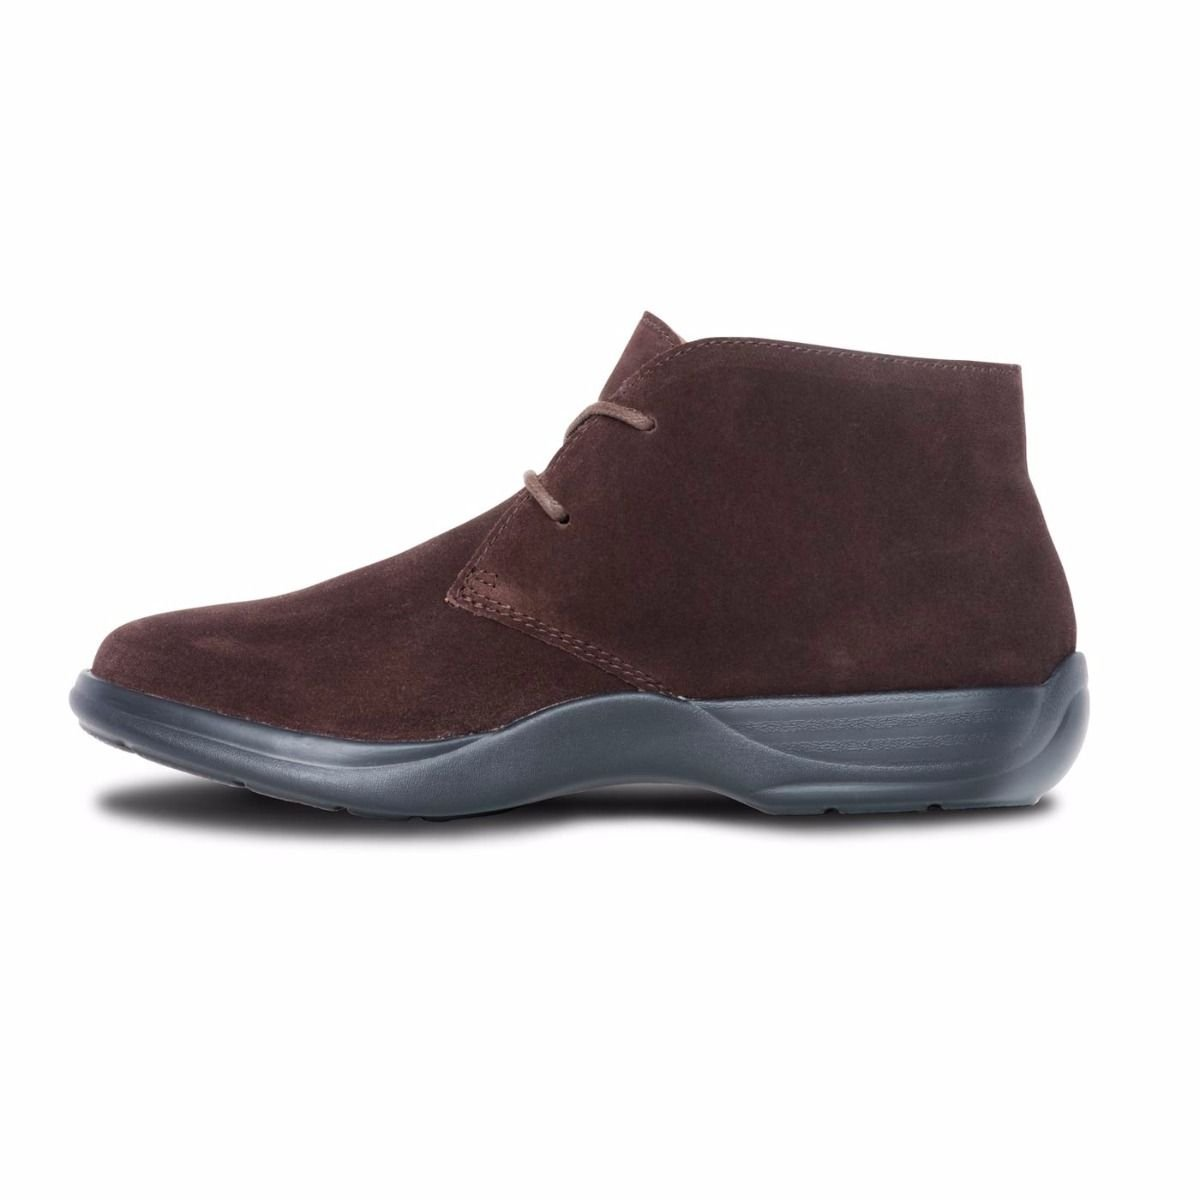 Dr. Comfort Women's Cara Casual Suede Leather Bootie Chukka Boot Brown B074ZSTB92 7 B(M) US|Brown